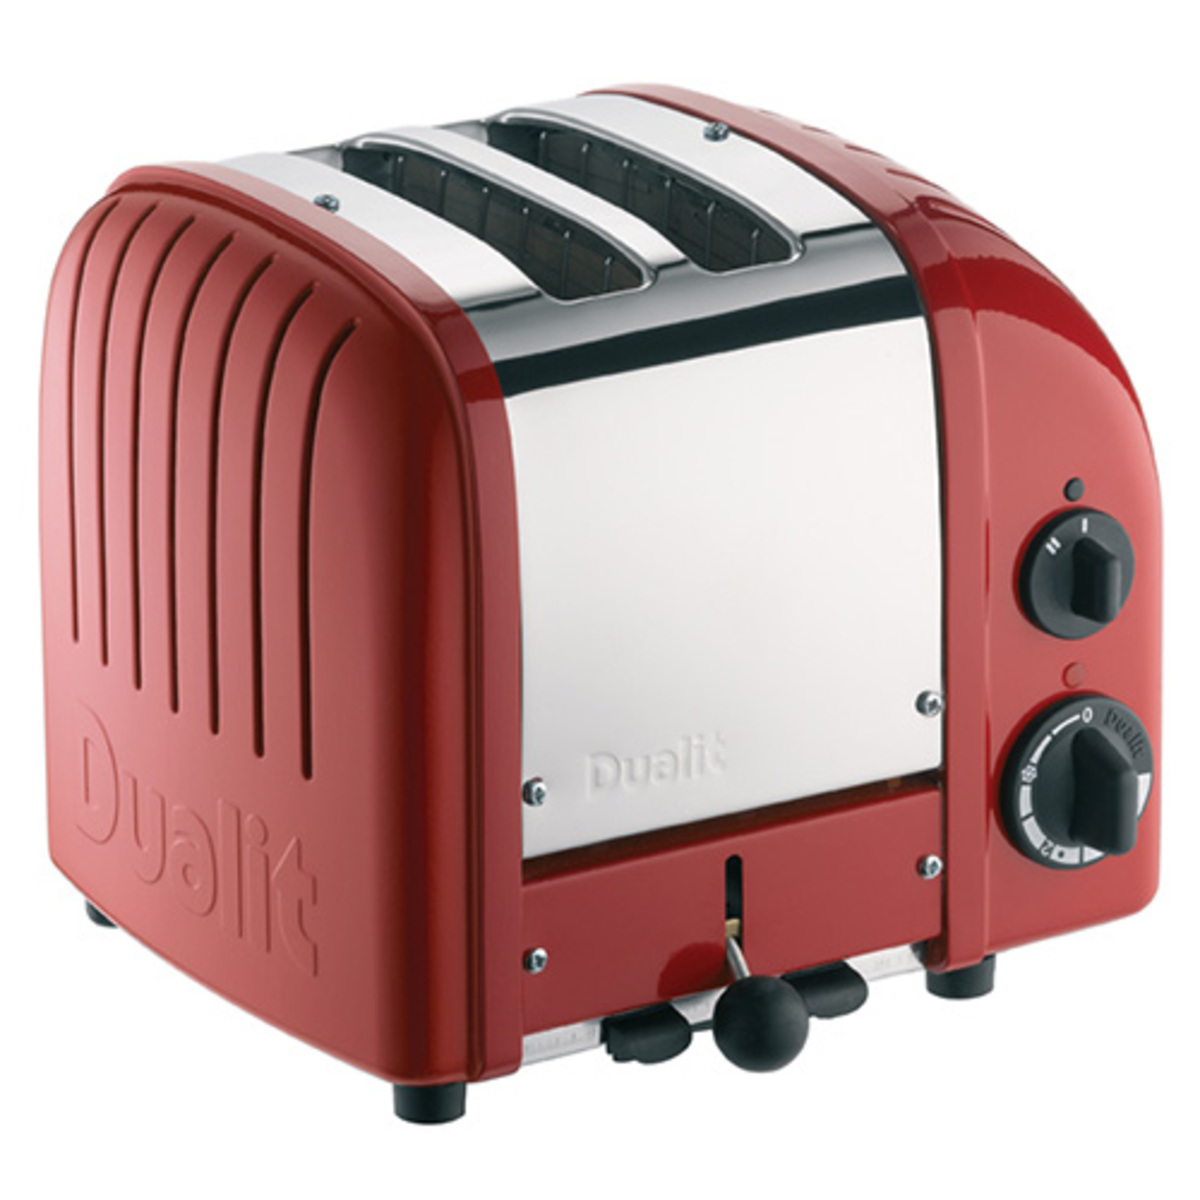 Image of Dualit 20442 Classic Vario AWS 2 Slot Toaster, Red